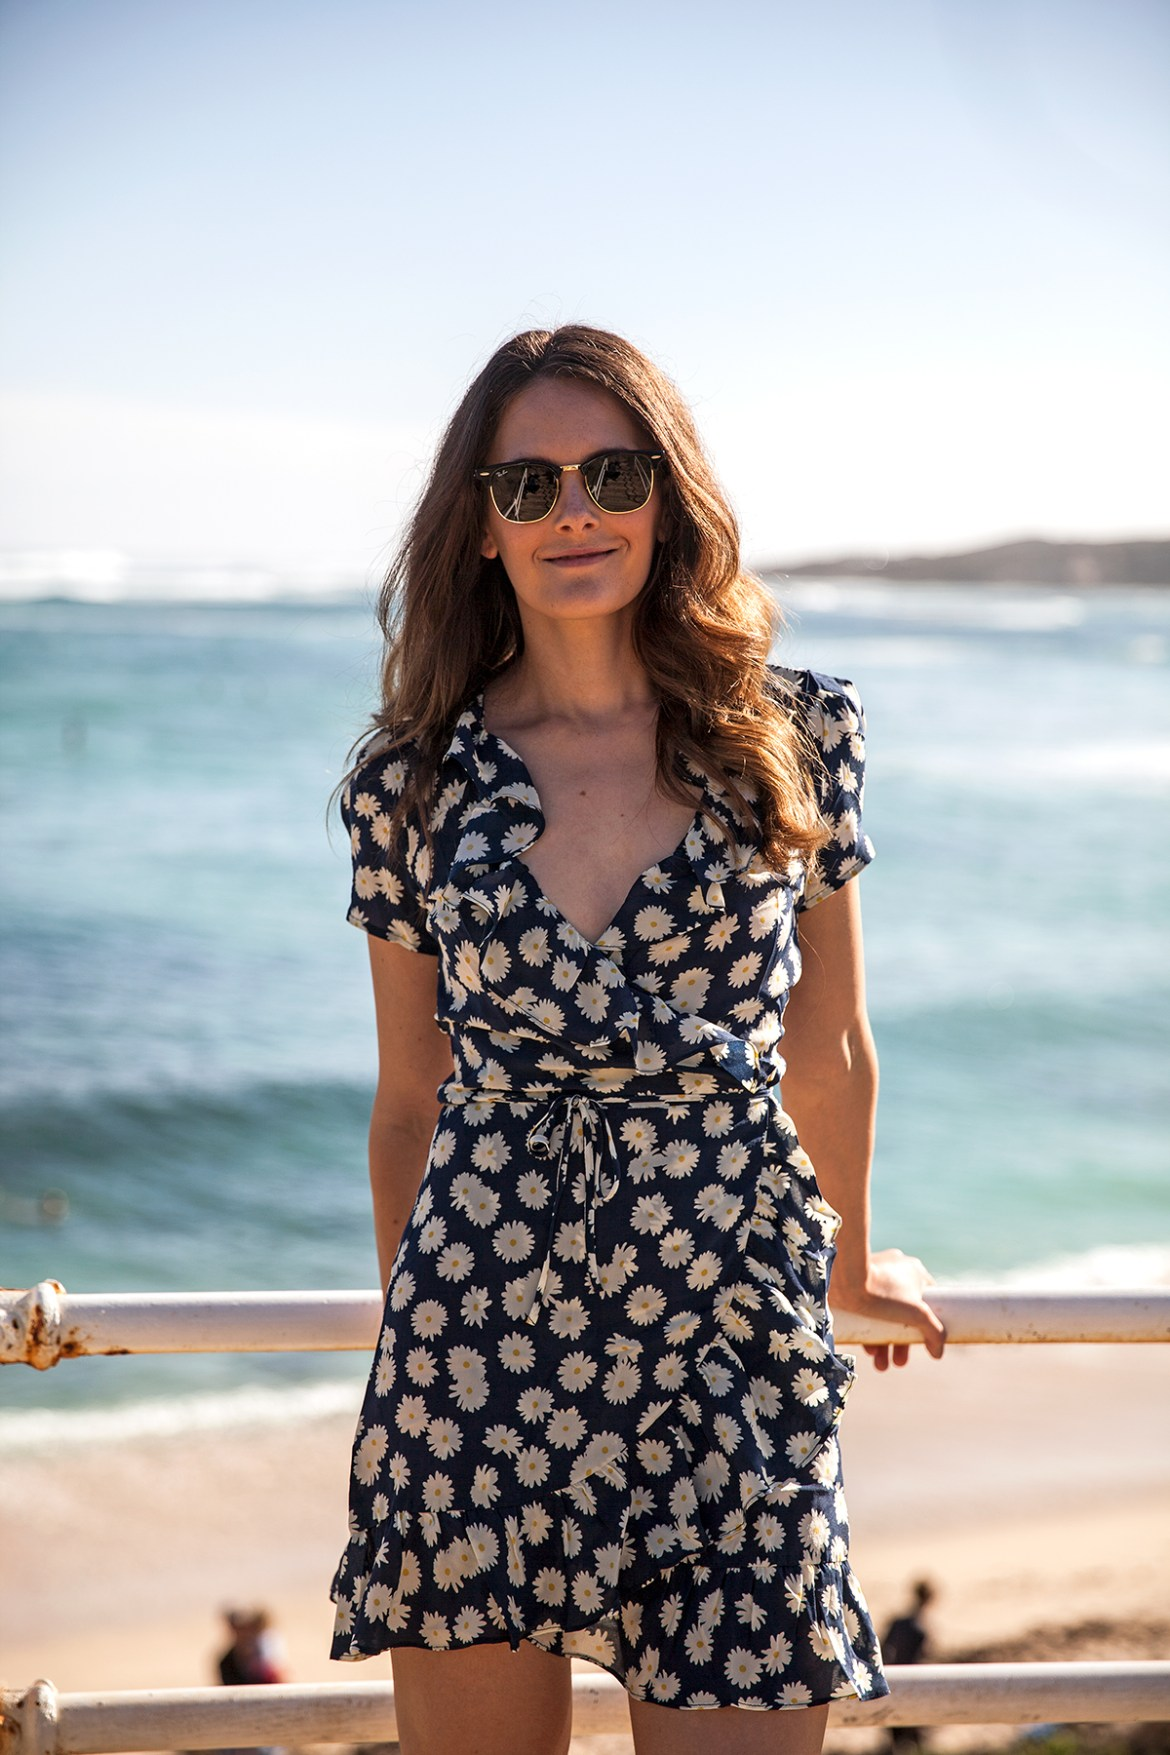 Valentina dress in Daisy print by Realisation Par worn by fashion blogger Jenelle of Inspiring Wit blog